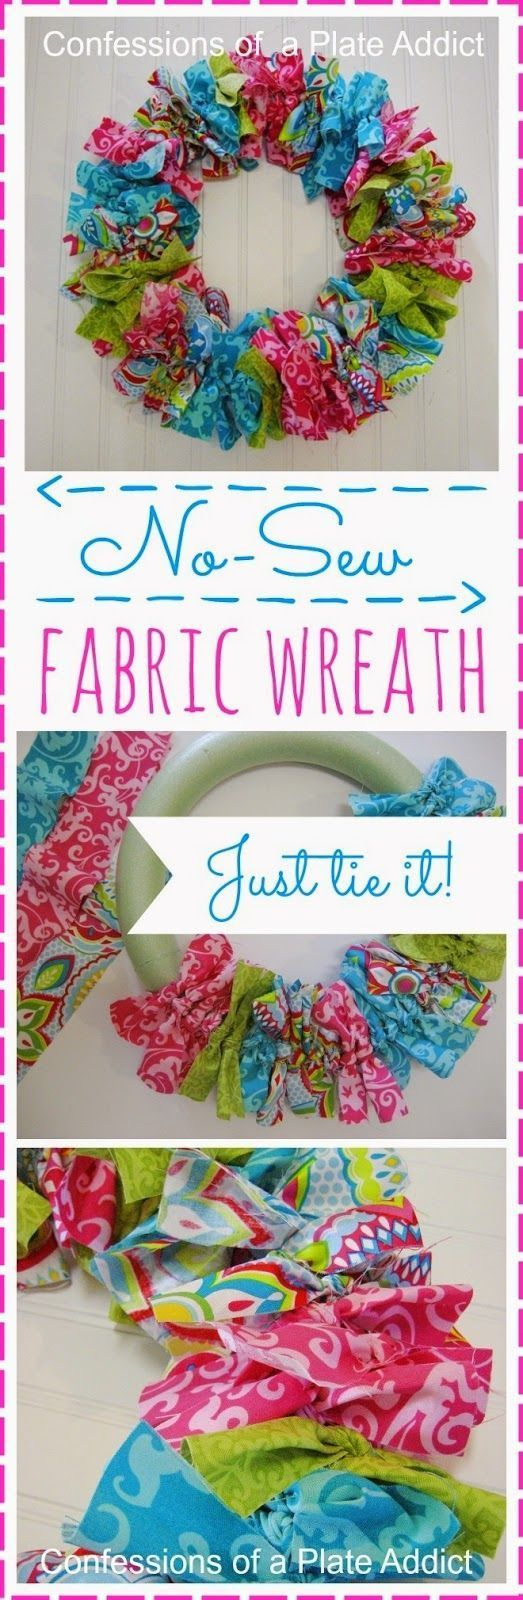 25 Great DIY Ideas and Tutorials to Upcycle Your Leftover Fabric Scraps